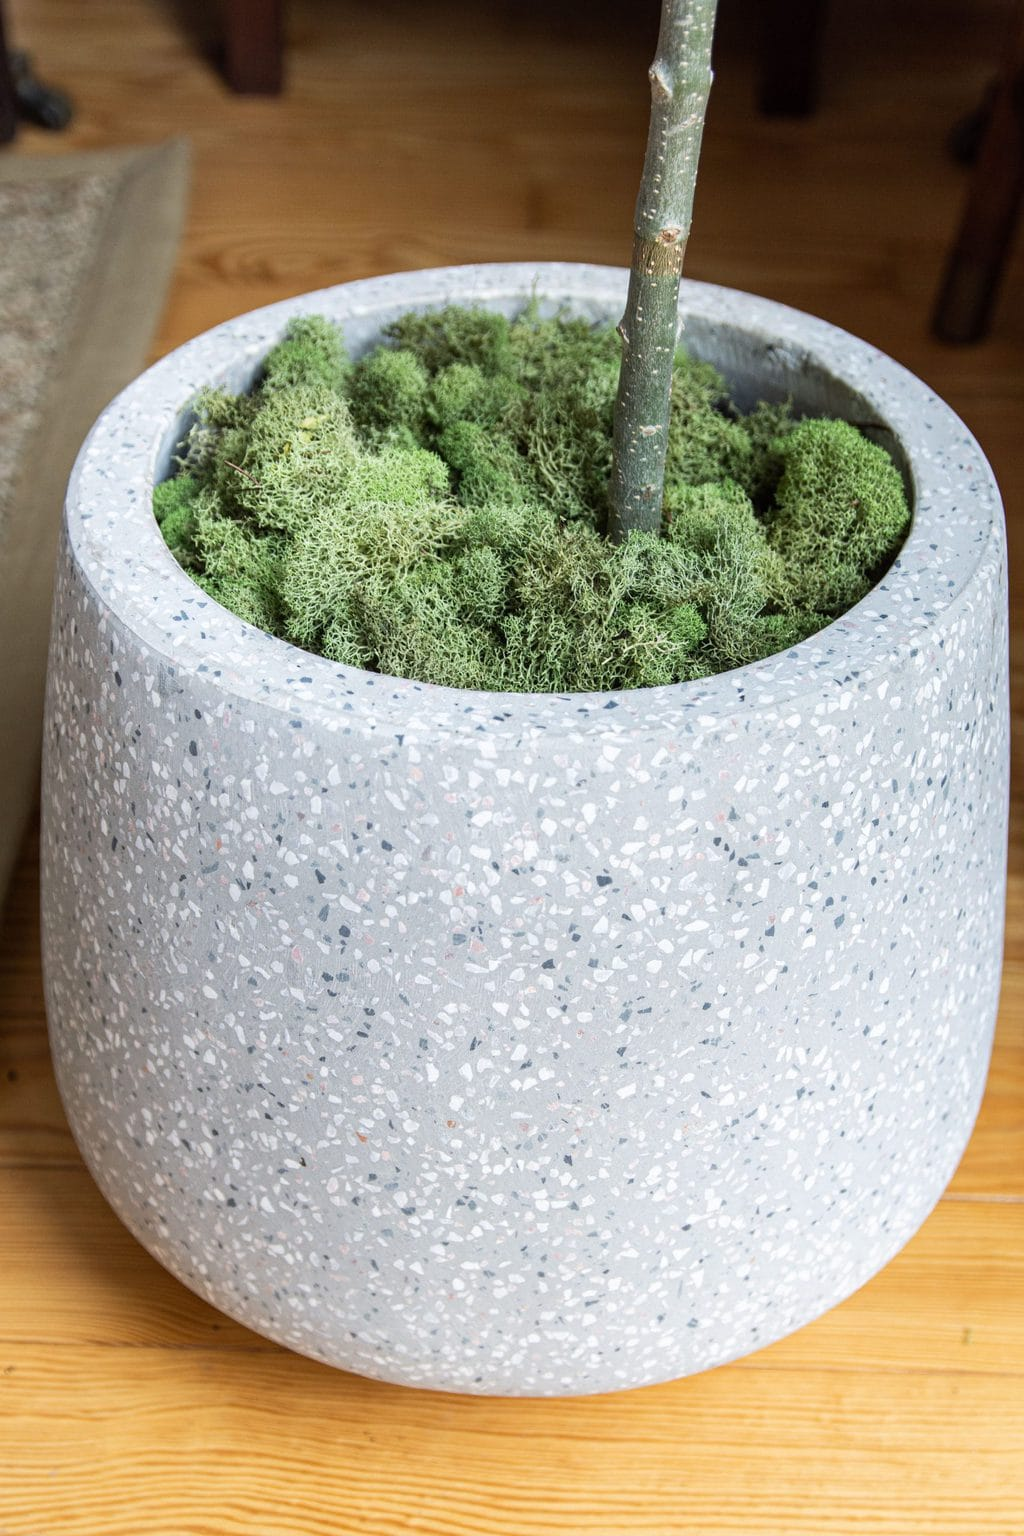 Modern Terrazzo planter with indoor olive tree and leaning floor mirror, townhouse design ideas by Kevin O'Gara on Thou Swell #article #myarticle #abiskosofa #bluesofa #moderndesign #livingroom #livingroomdesign #homedecor #homedecorideas